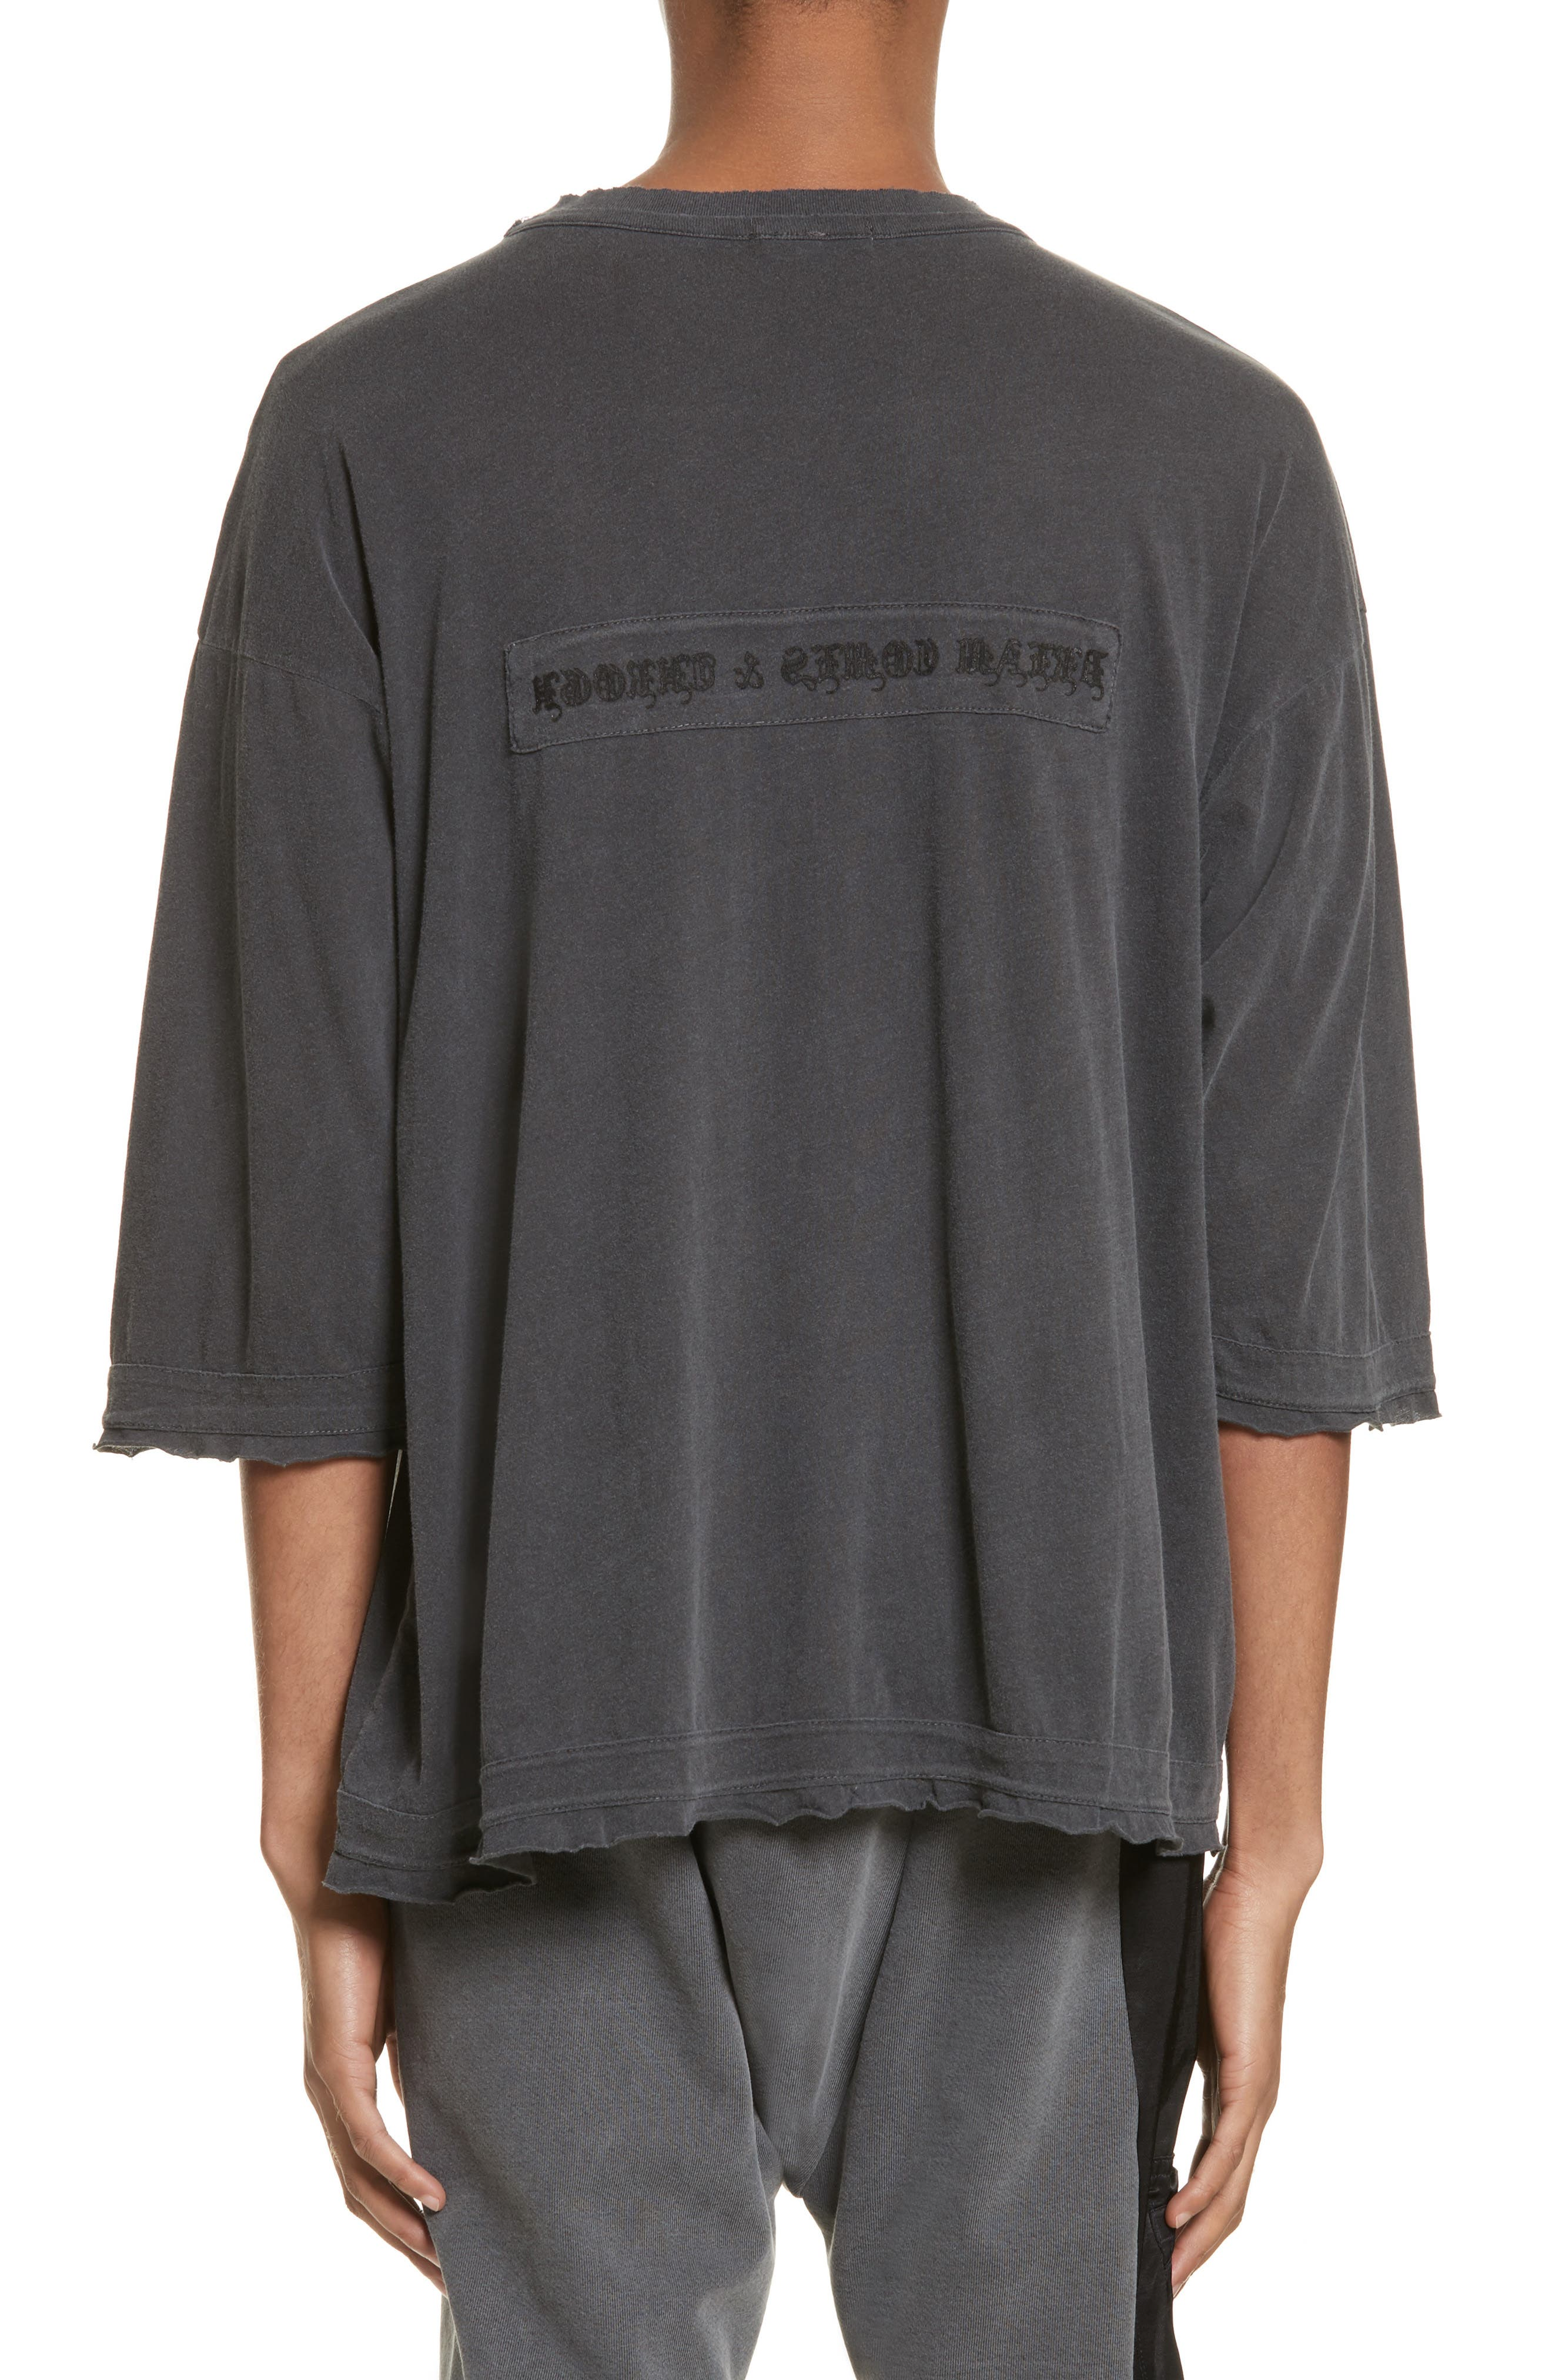 Eshu Oversize T-Shirt,                             Alternate thumbnail 2, color,                             Black Pigment